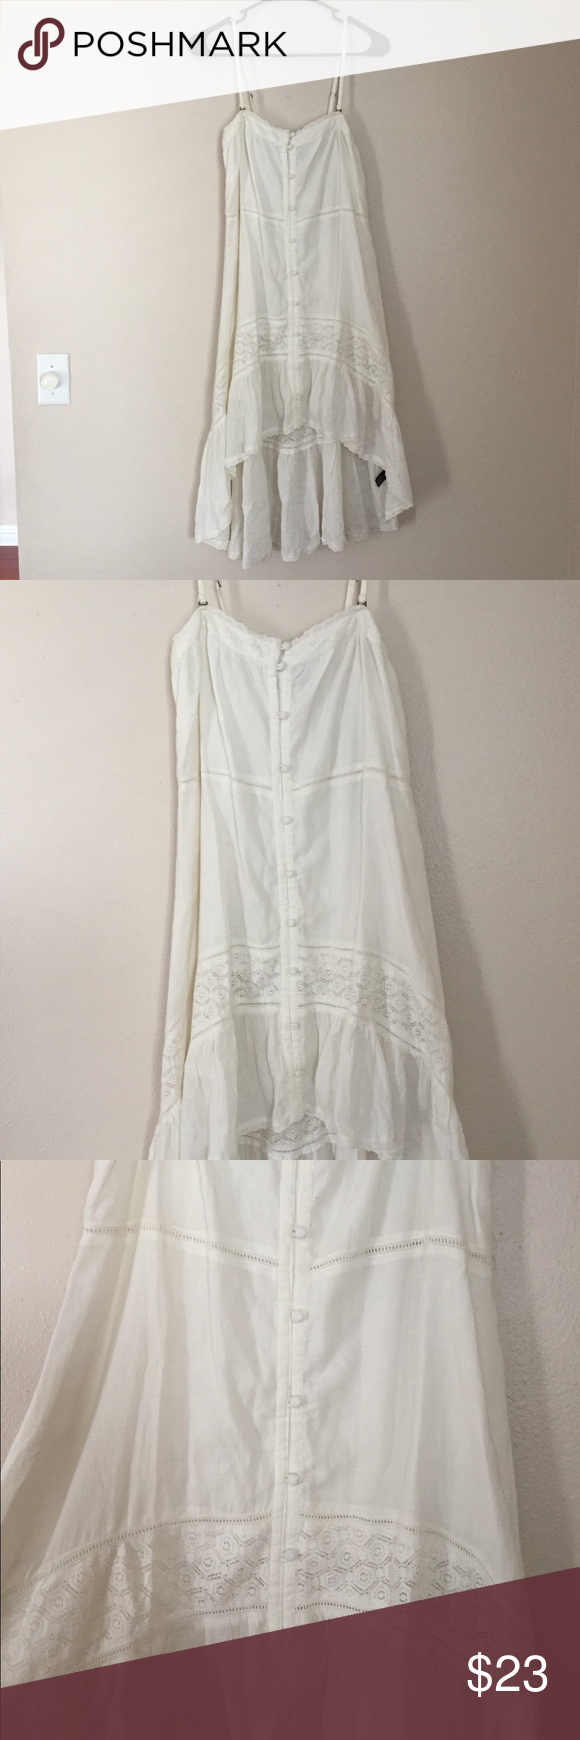 Lace dress cover up  NWT White OuNeill lace dress  beach cover up  Dress beach Beach